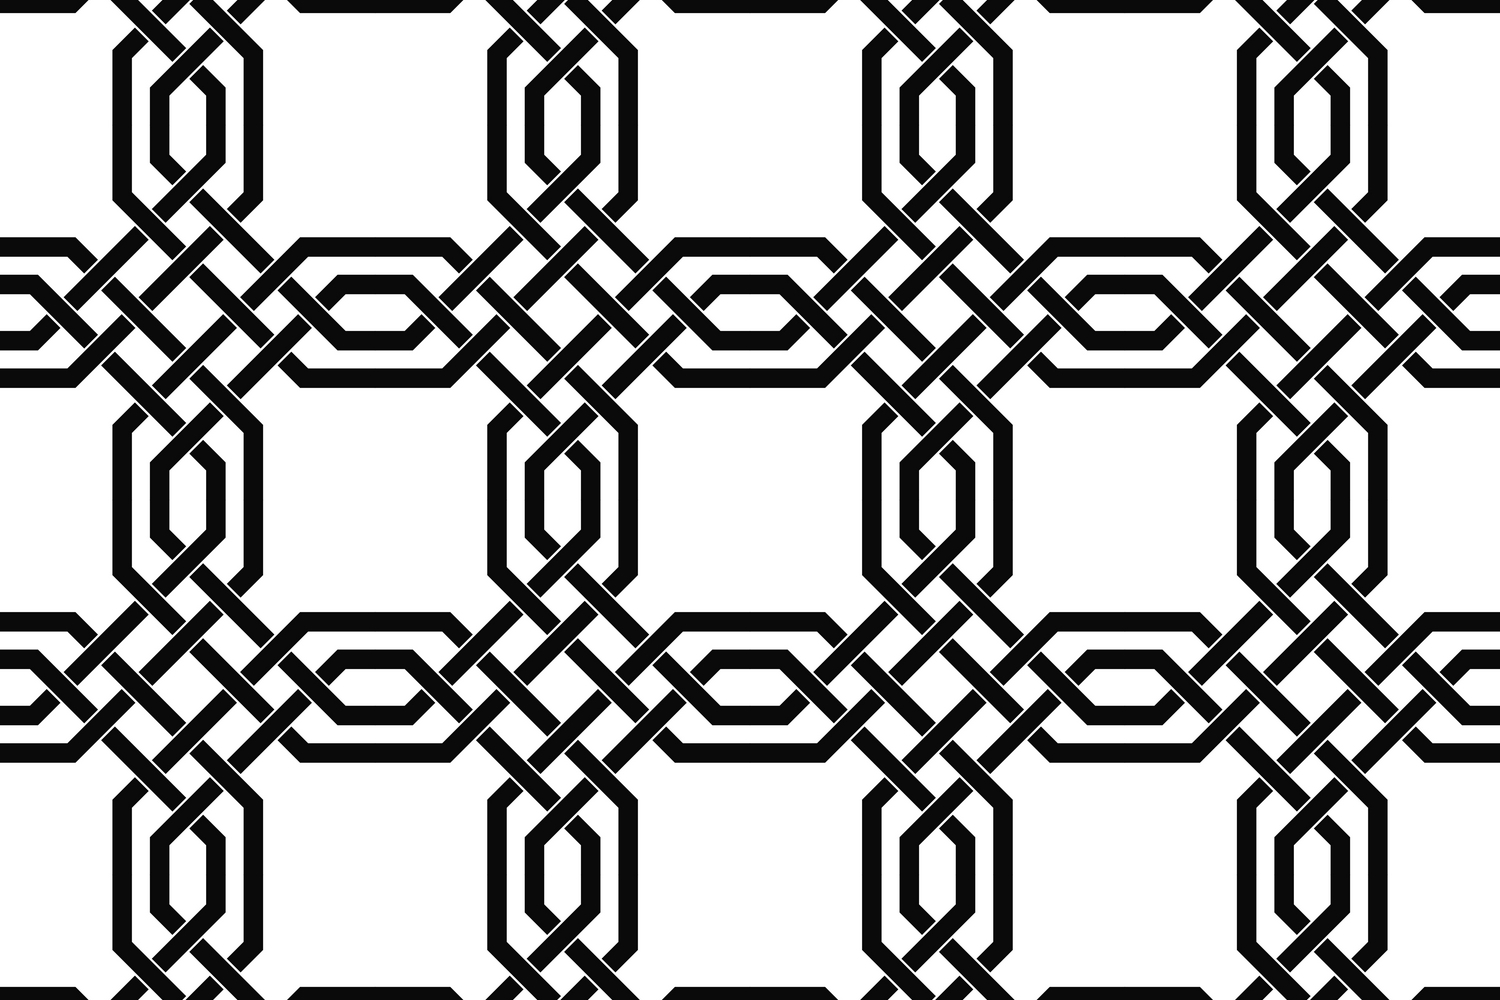 15 seamless grid patterns (EPS, AI, SVG, JPG 5000x5000) example image 2